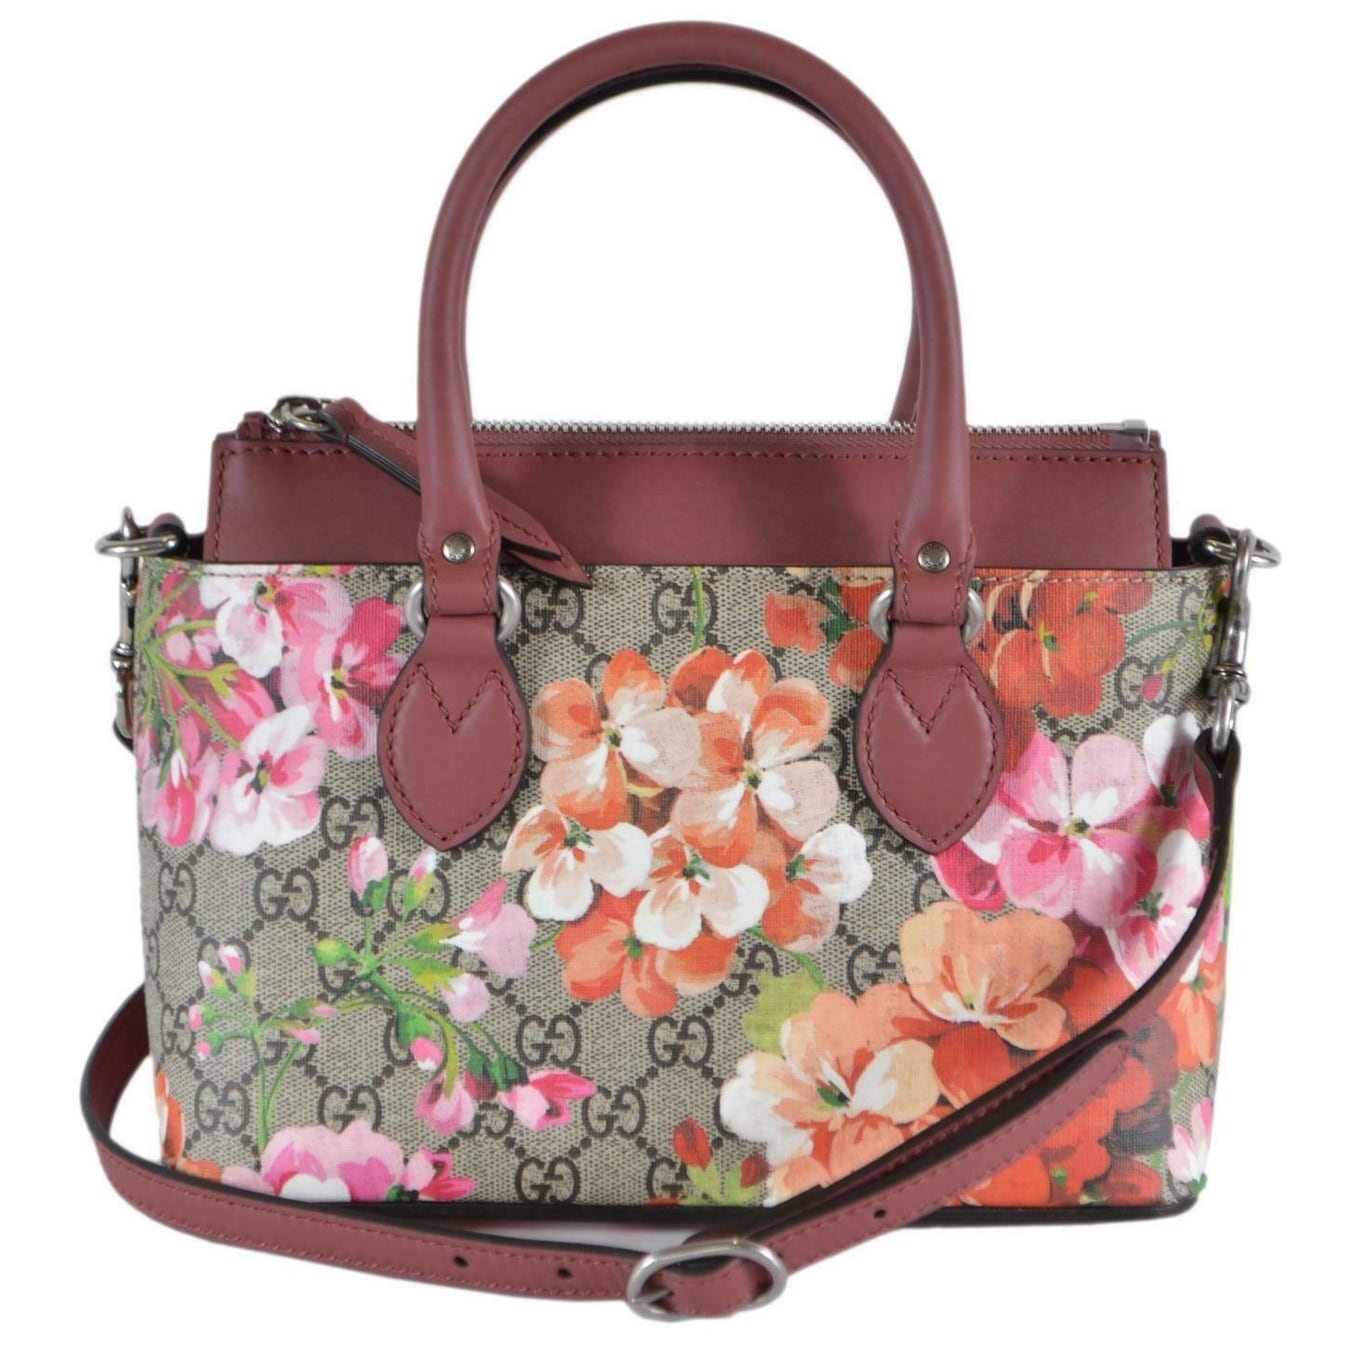 19a5bd0aad1c Shop Gucci Women's 453177 SMALL GG Supreme BLOOMS 2-Way Shoulder Bag Purse  - Beige/Brown - Free Shipping Today - Overstock - 27890054